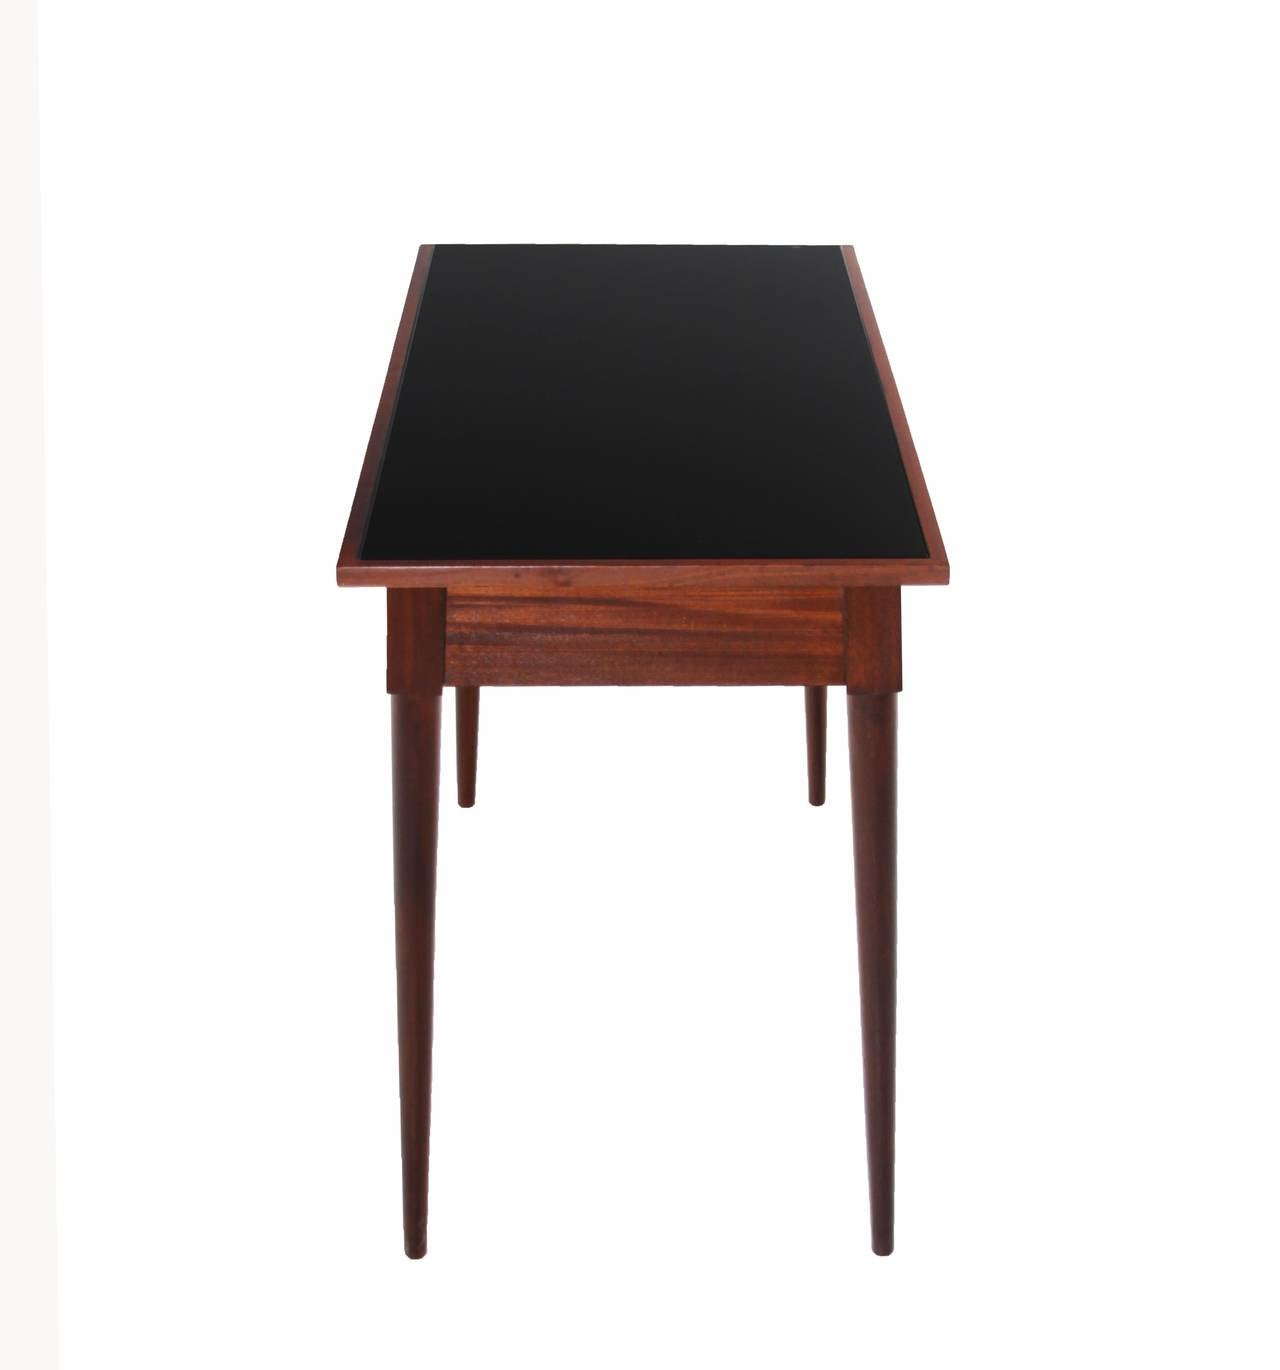 Giuseppe Scapinelli For Tepperman Freijo Desk Or Console